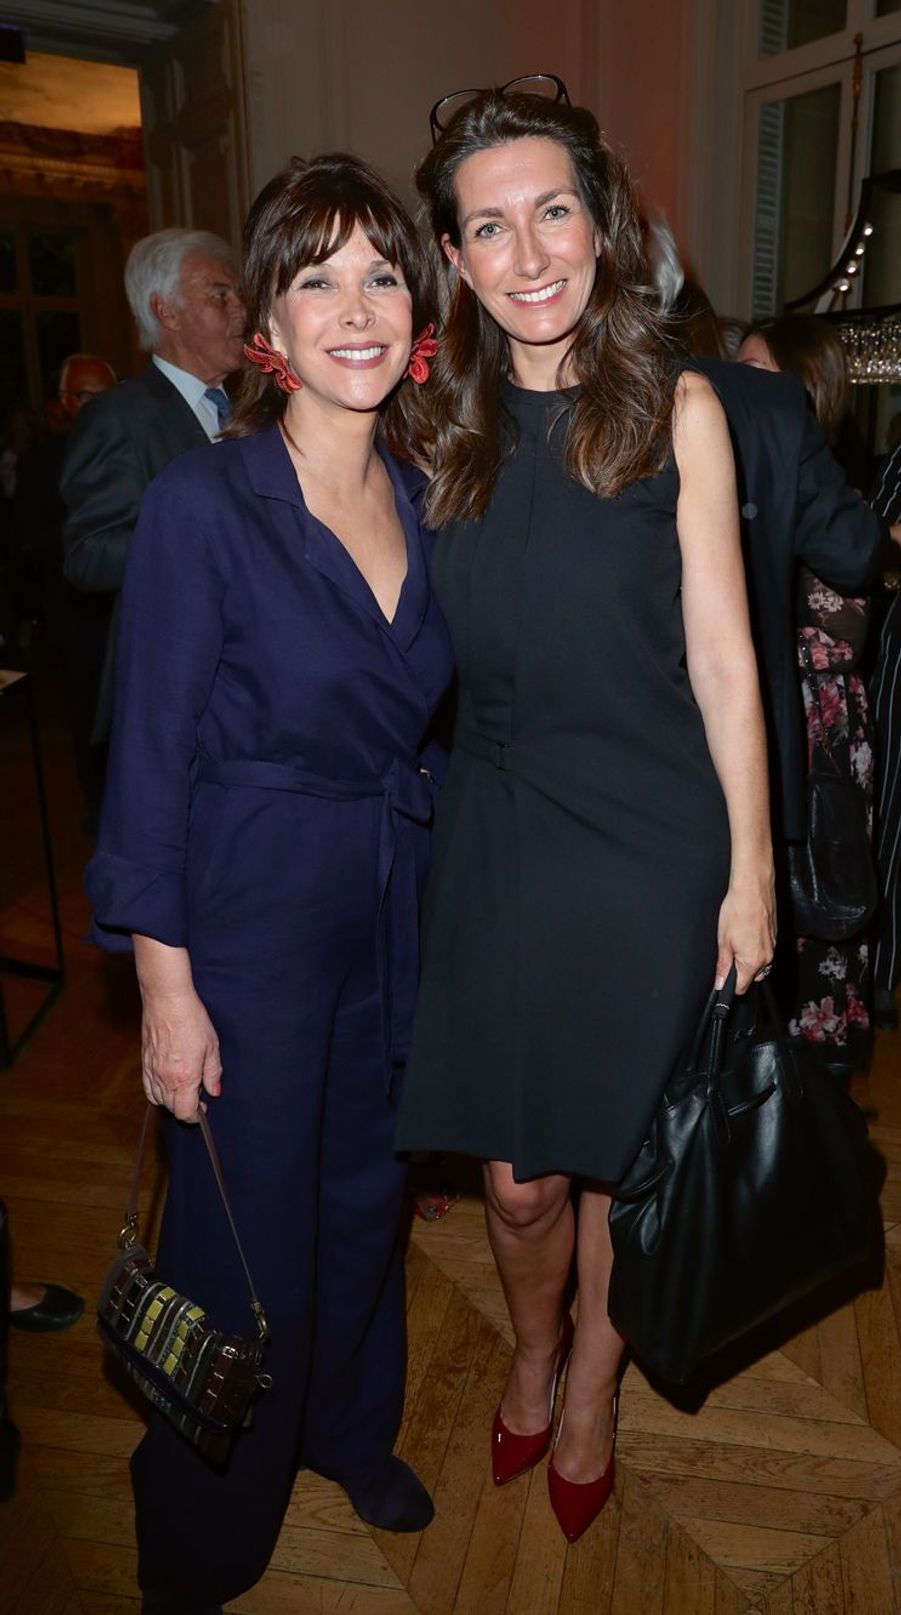 Tina Kieffer et Anne-Claire Coudray.